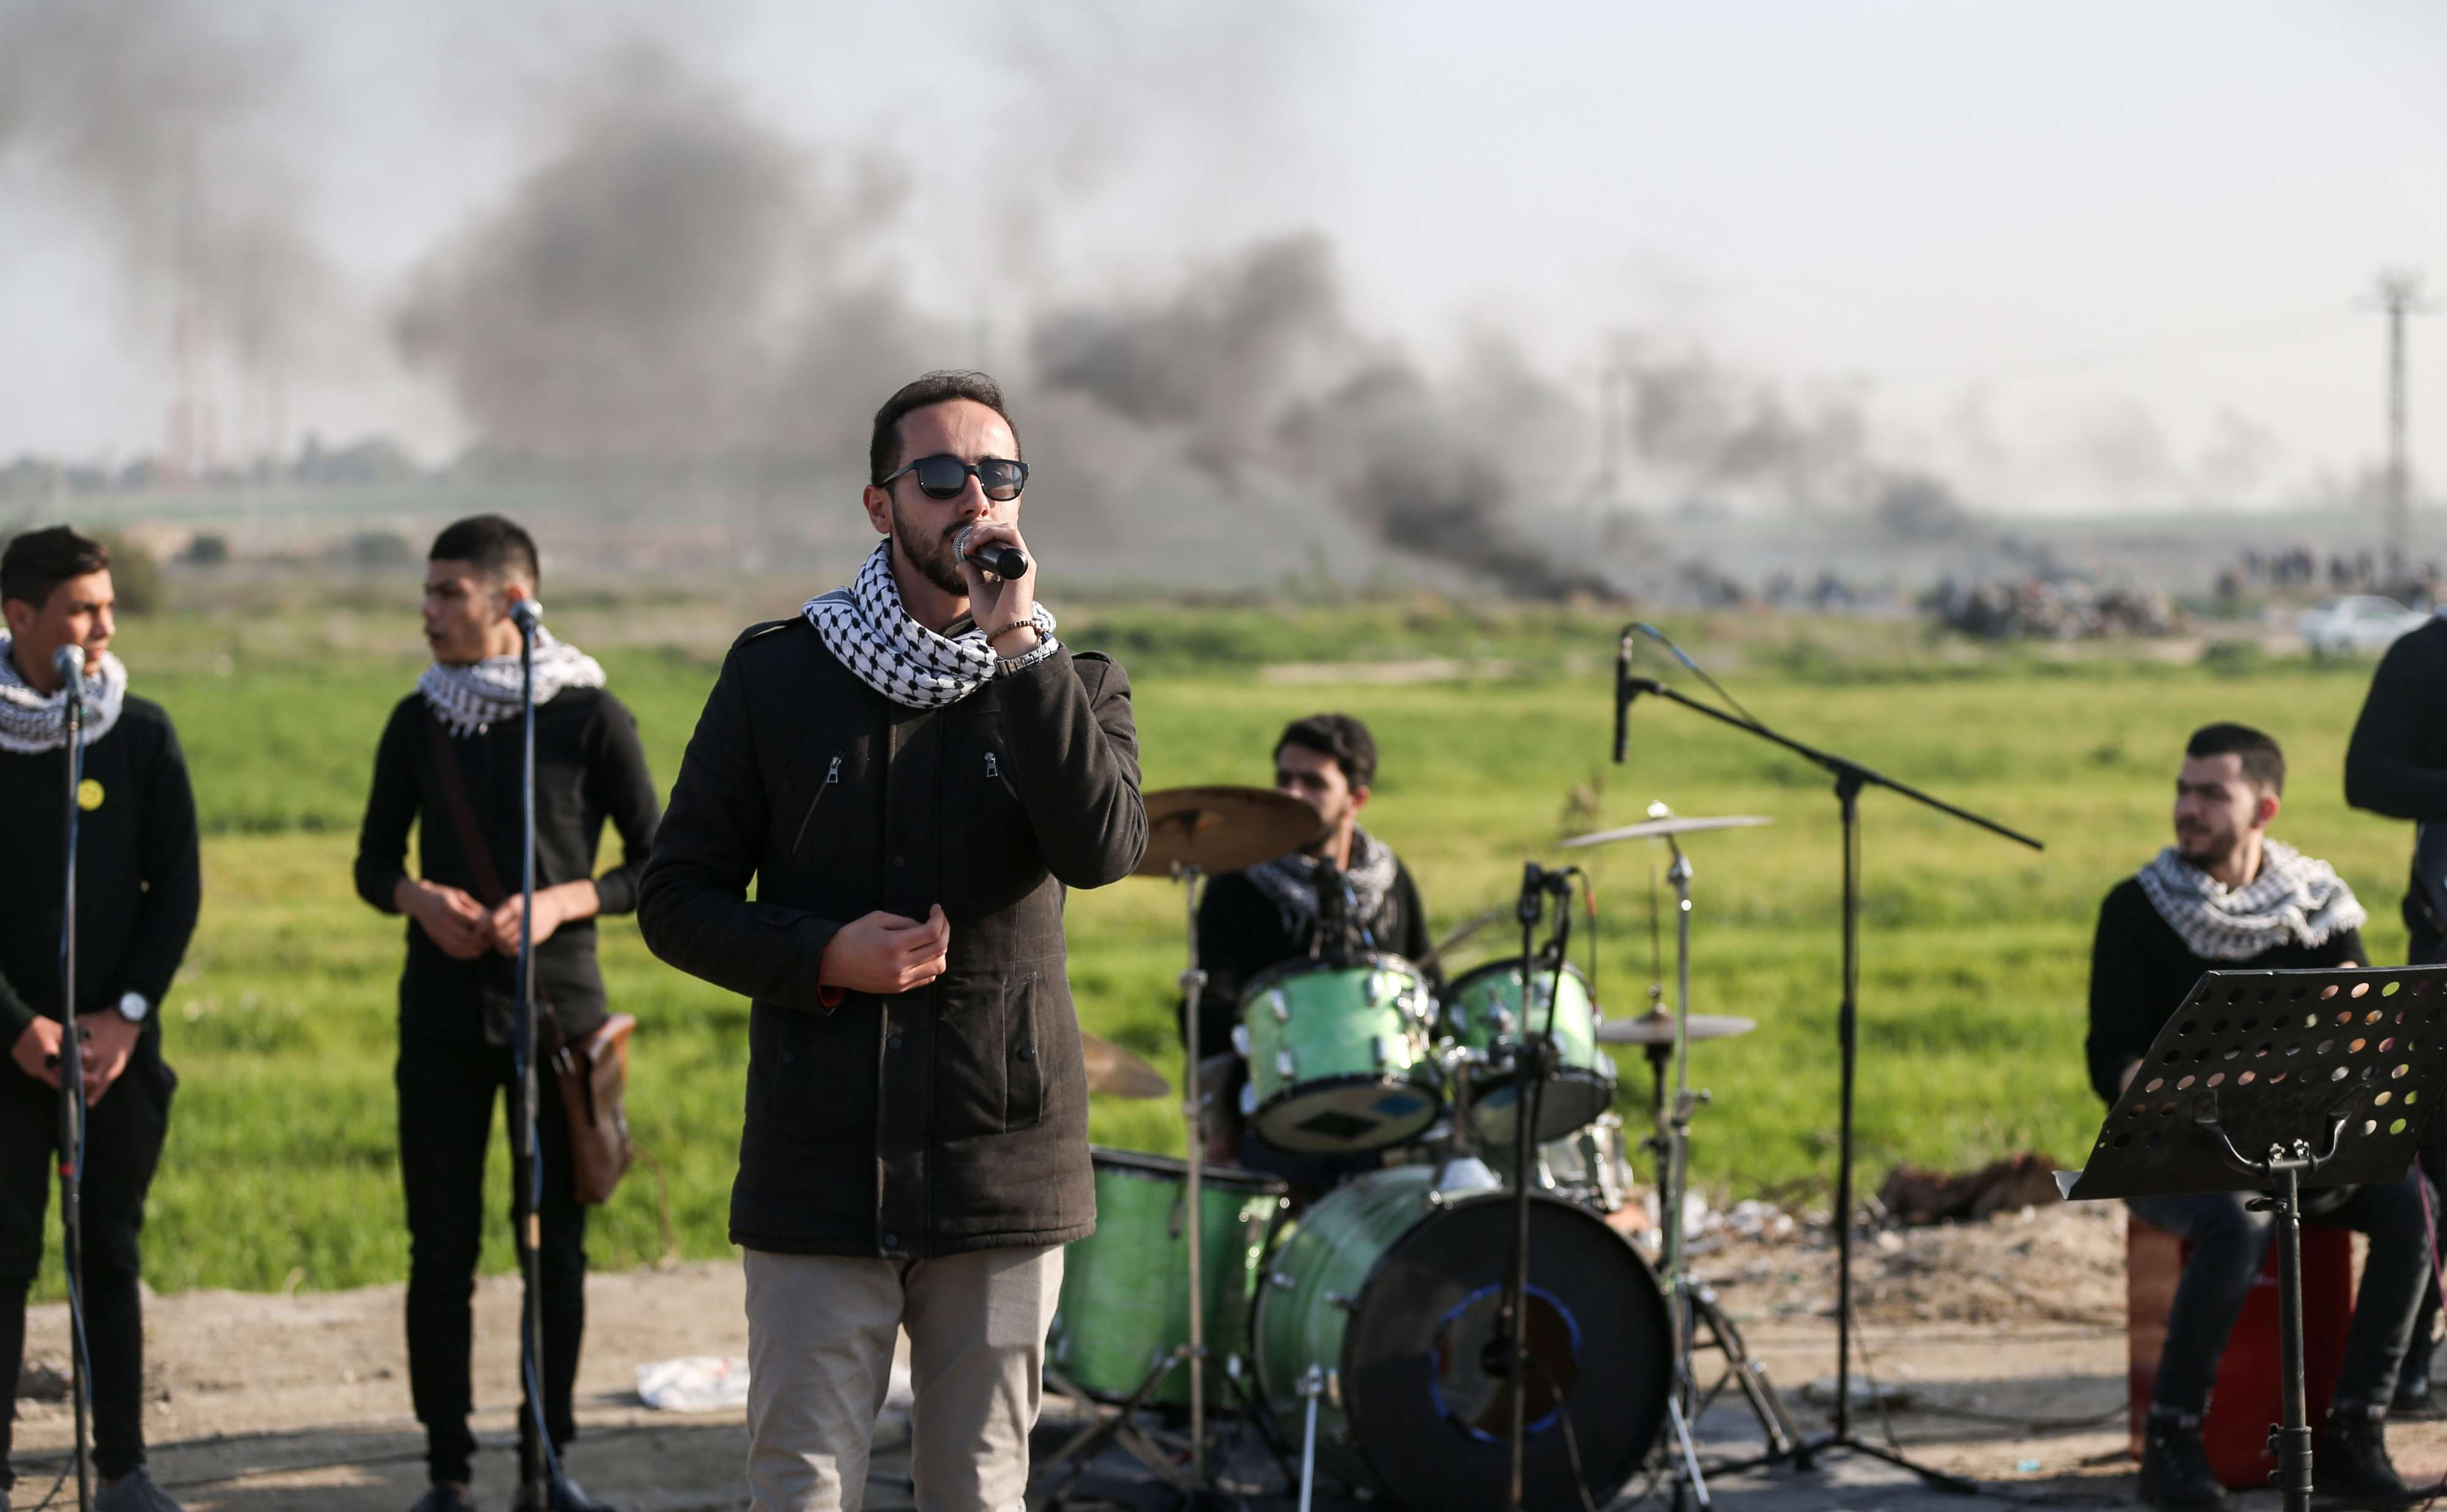 A Palestinian band performs a concert during clashes near the border with Israel, last February.(AFP)